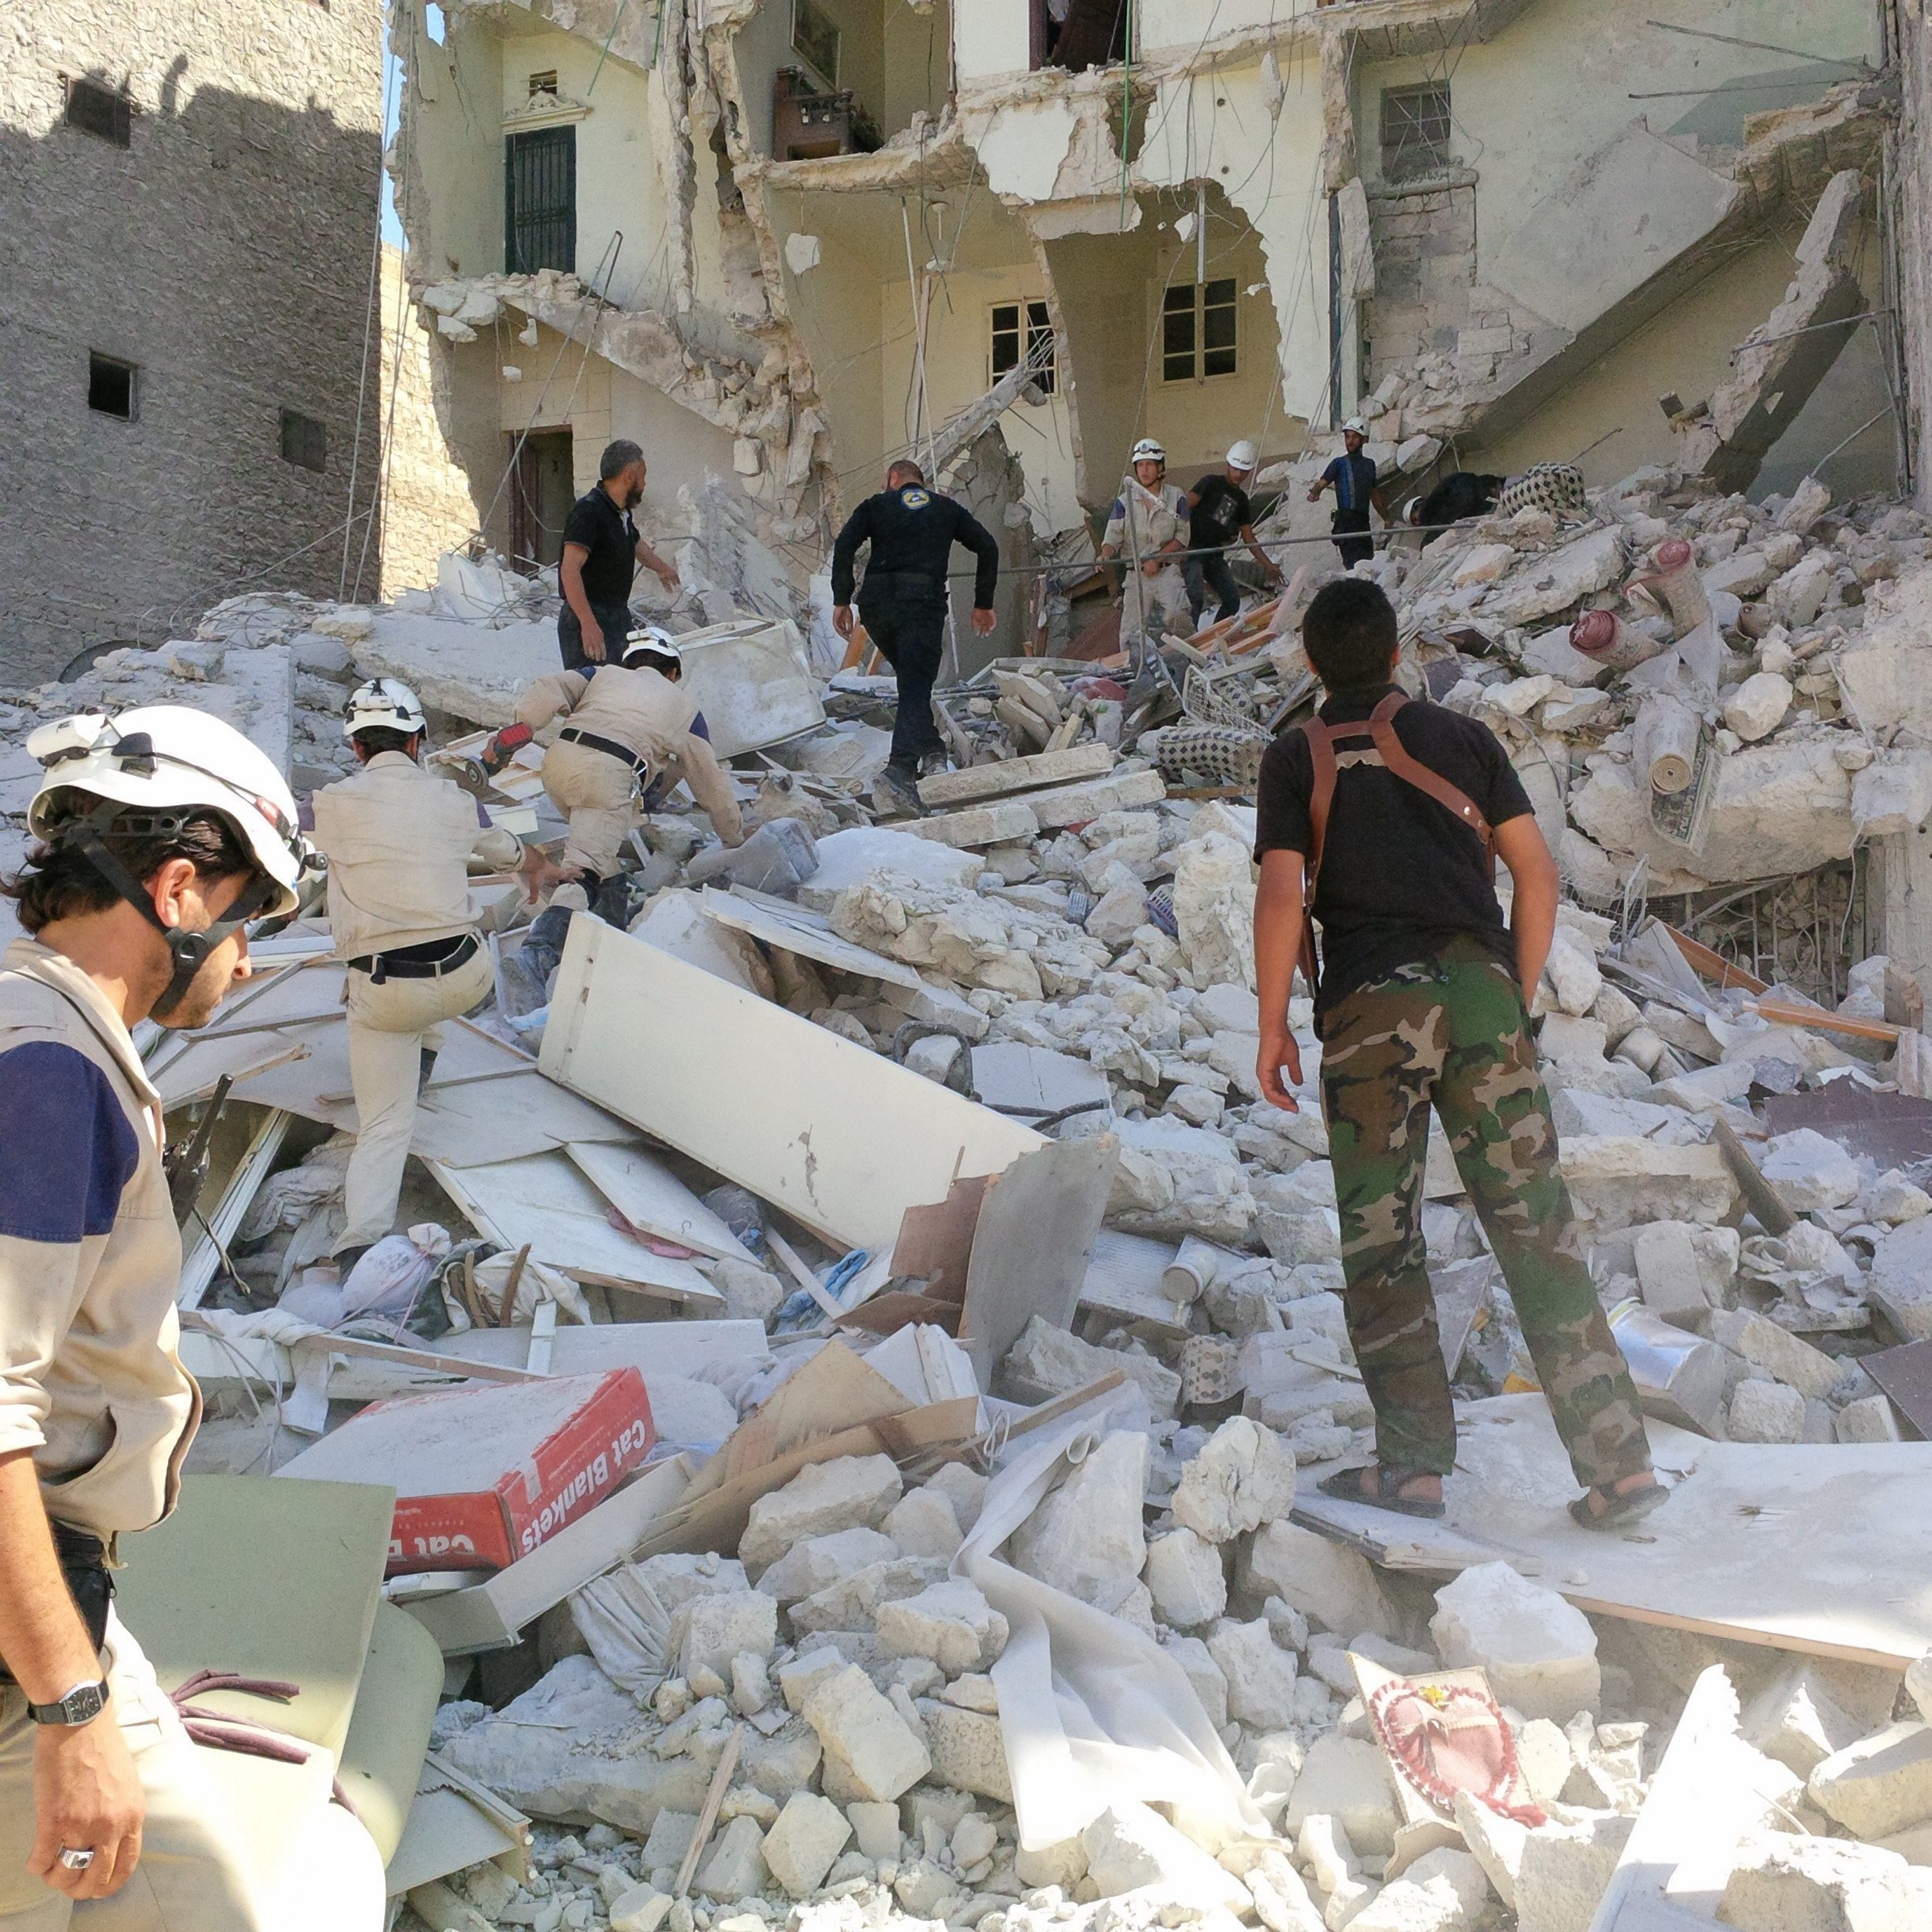 Members of Aleppo's civil defense team scramble at the scene of a government barrel bomb attack to rescue a woman trapped in her home, which was sheared in half by the blast.